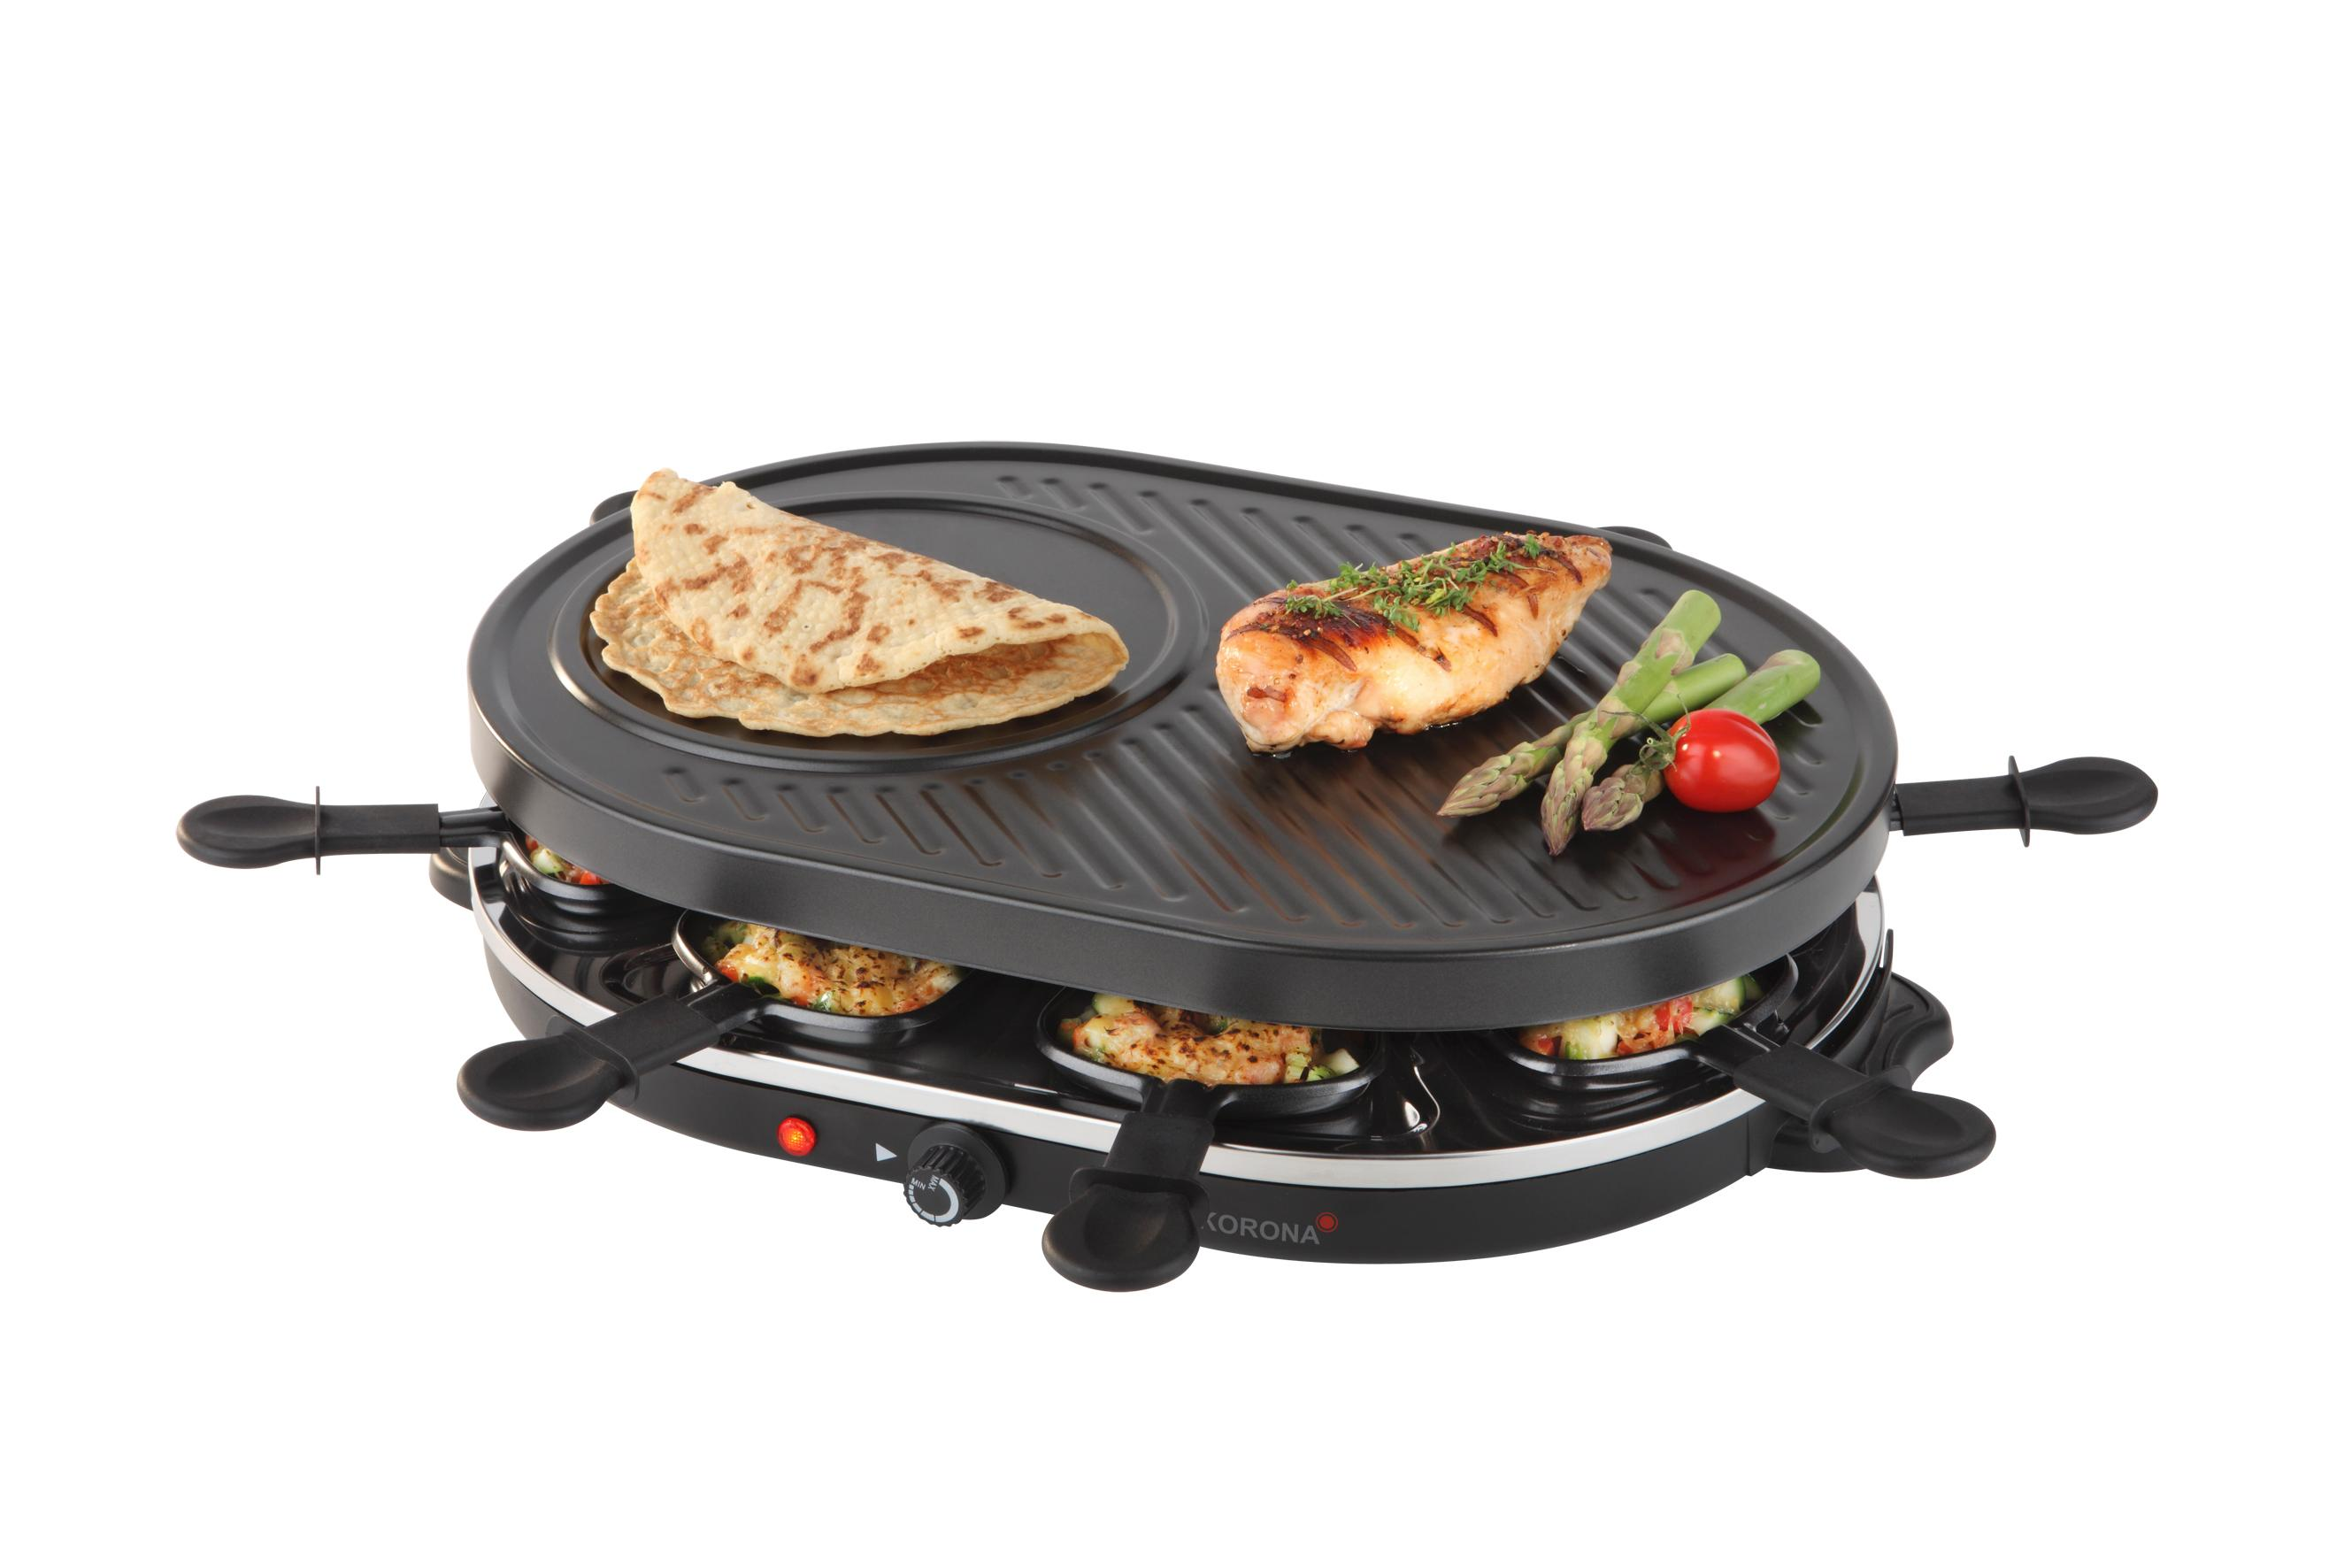 korona 45000 raclette grill 1200 watt 8 personen schwarz. Black Bedroom Furniture Sets. Home Design Ideas